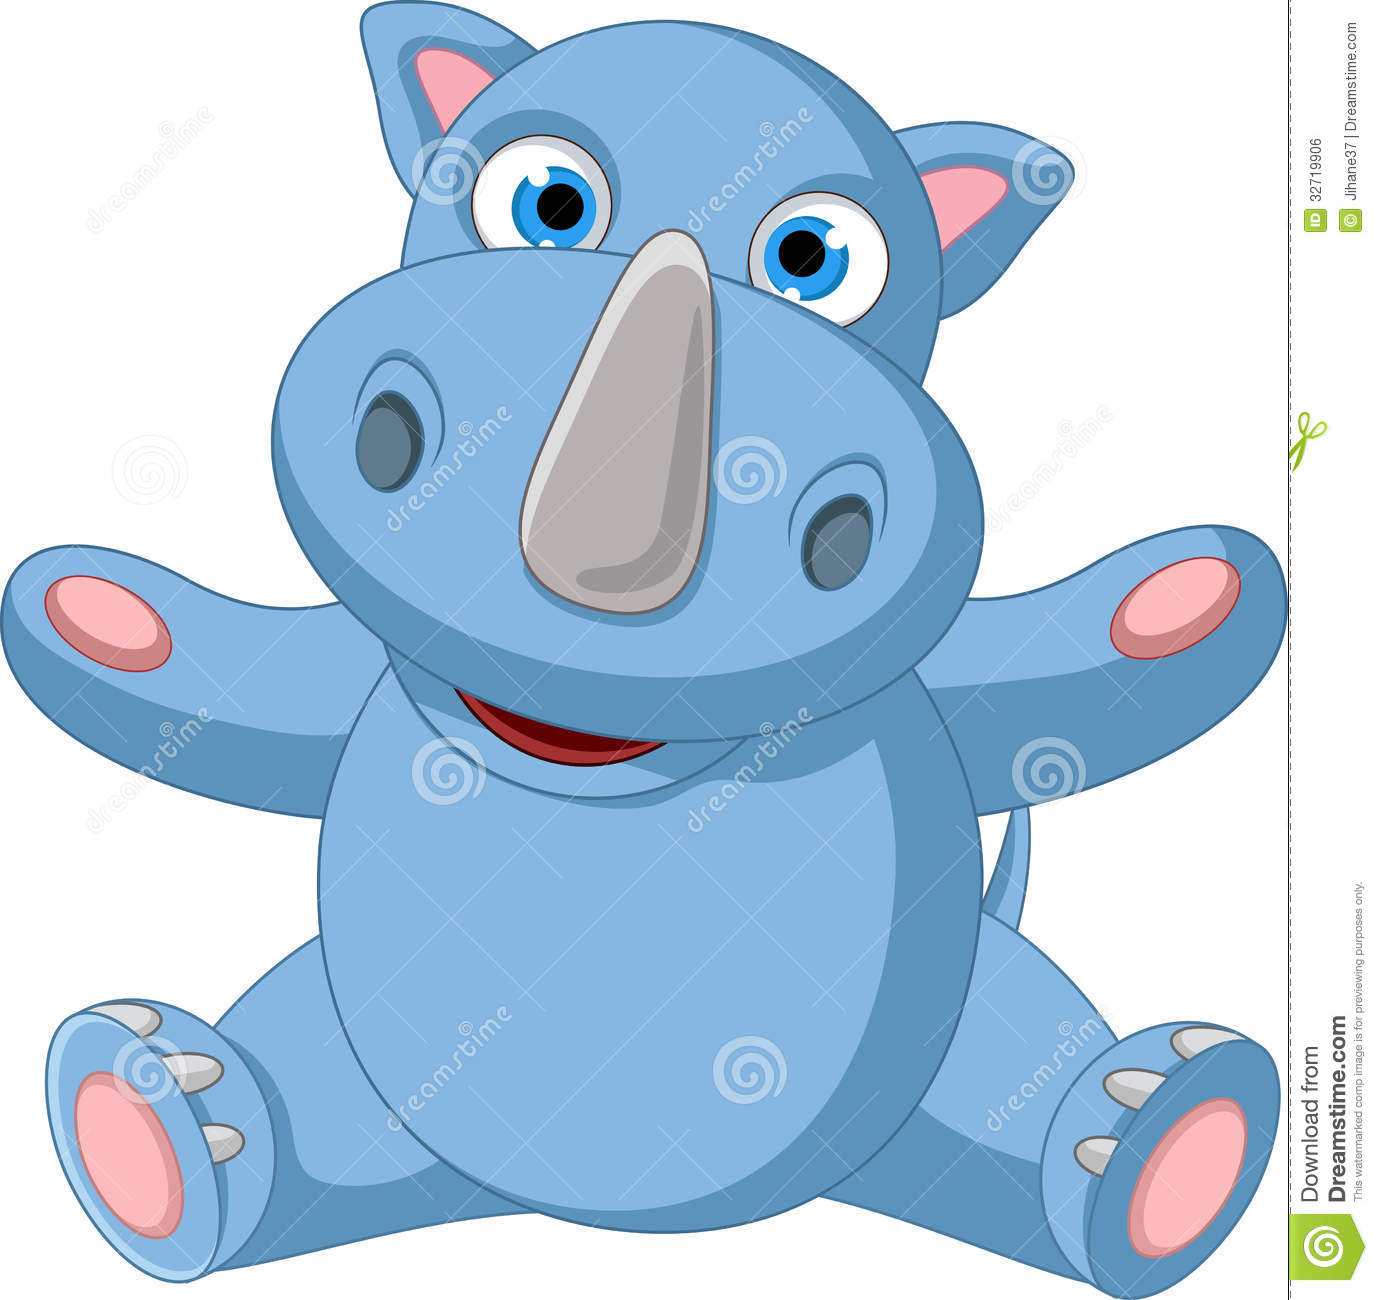 Happy Rhino Cartoon For You Design Royalty Free Stock Image - Image ...